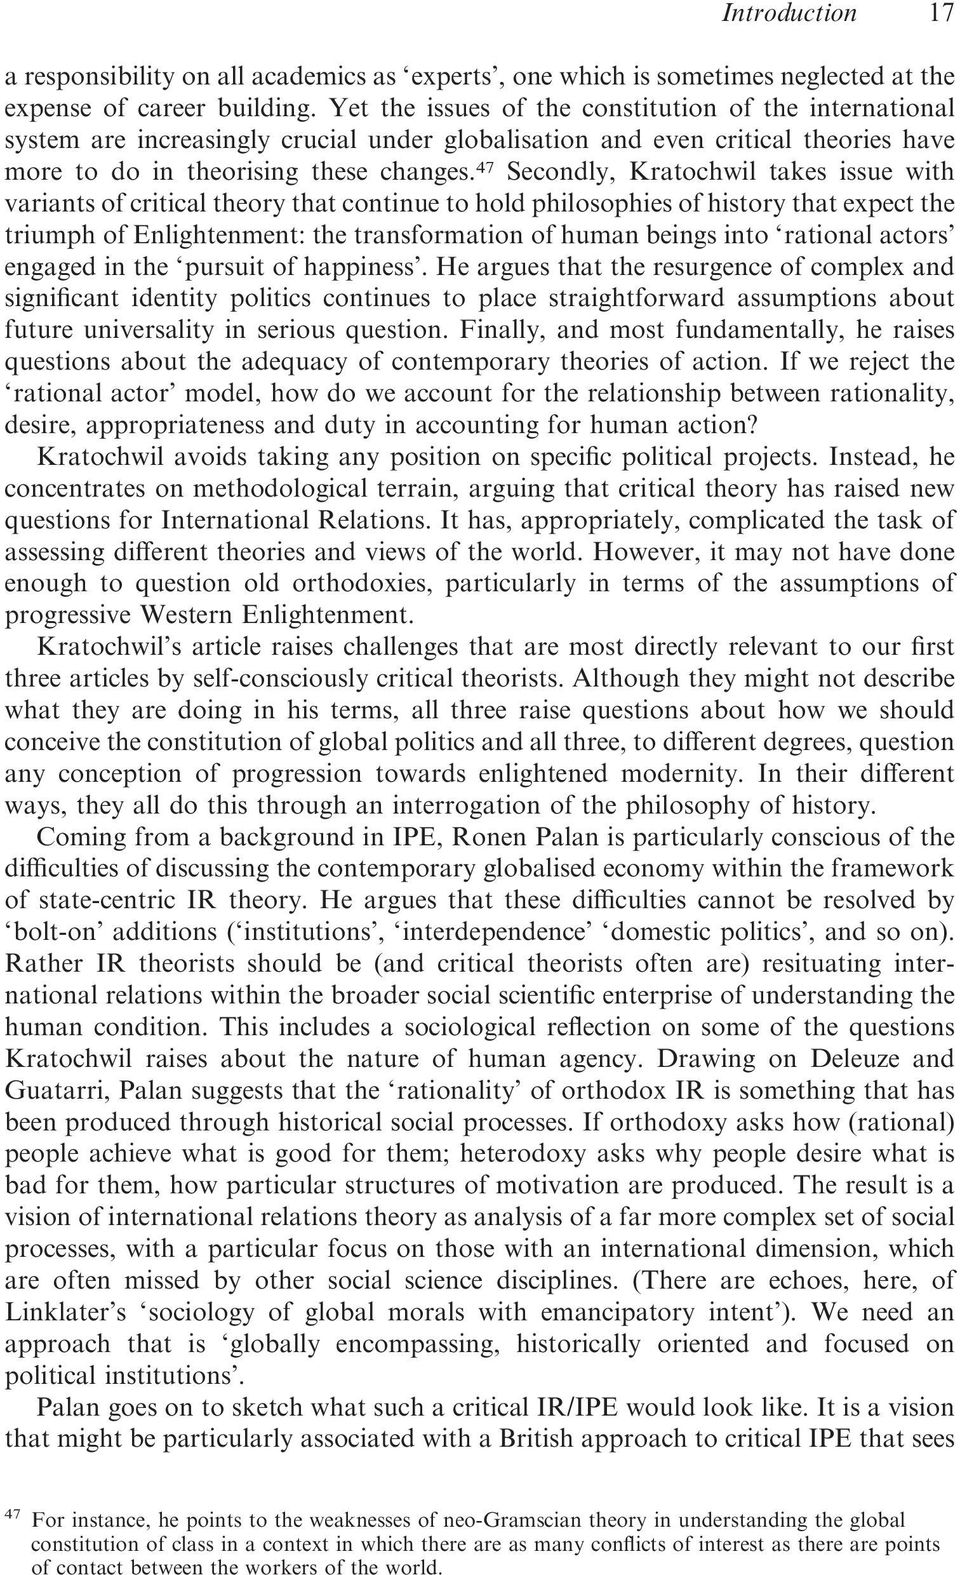 47 Secondly, Kratochwil takes issue with variants of critical theory that continue to hold philosophies of history that expect the triumph of Enlightenment: the transformation of human beings into